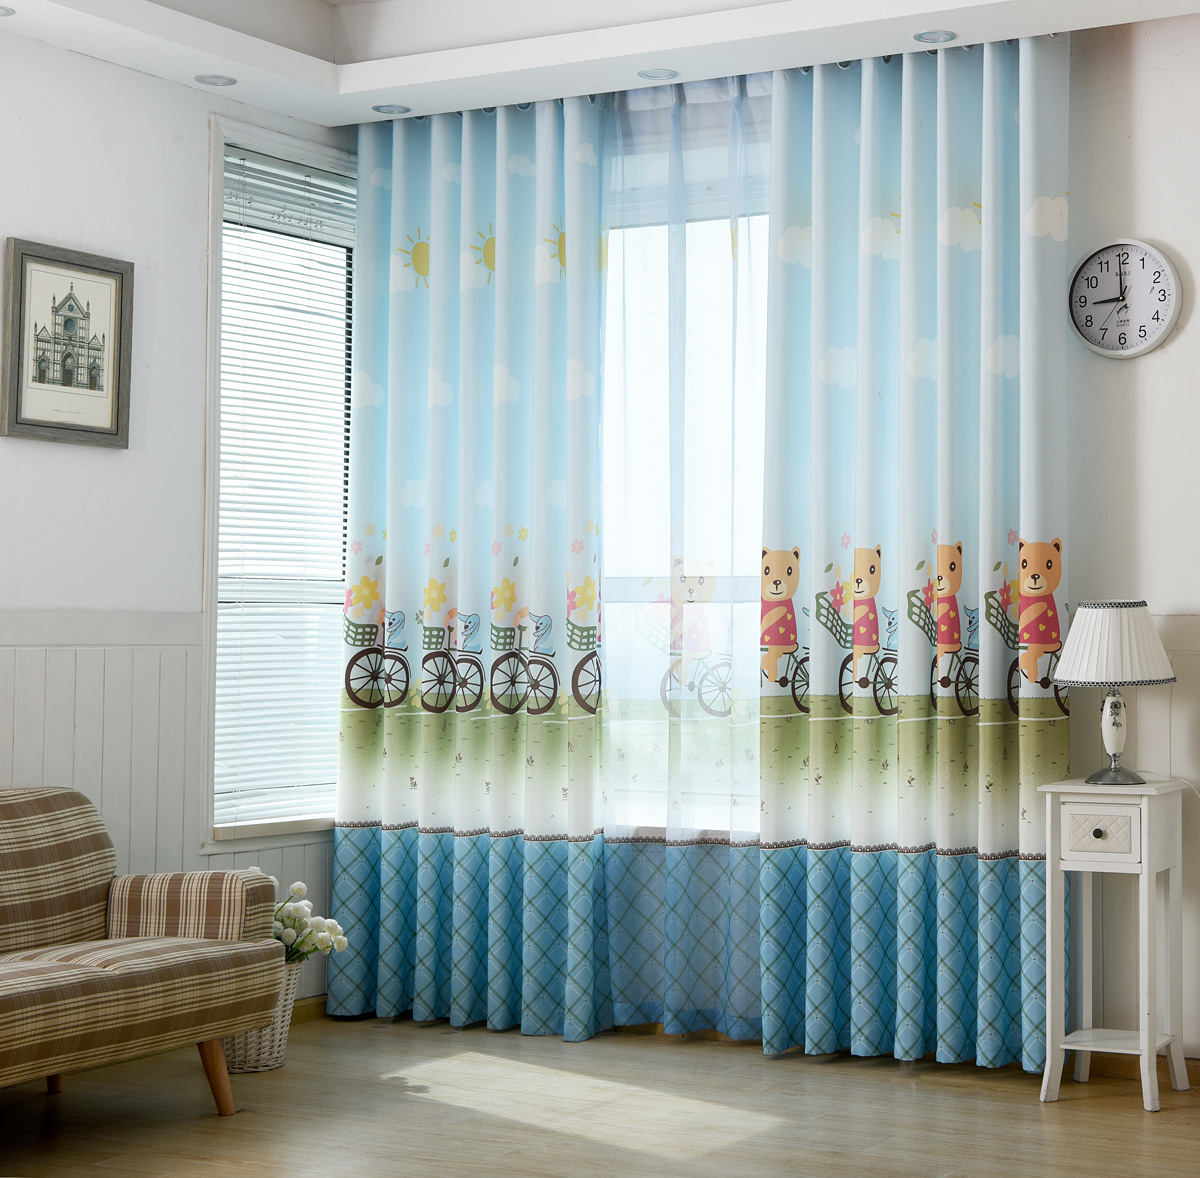 from r susanwoodcock curtains medallions arched supply custom singerr draperies company sewing singer on pleated drapery best top shades hardware is united treatments and curtain trea